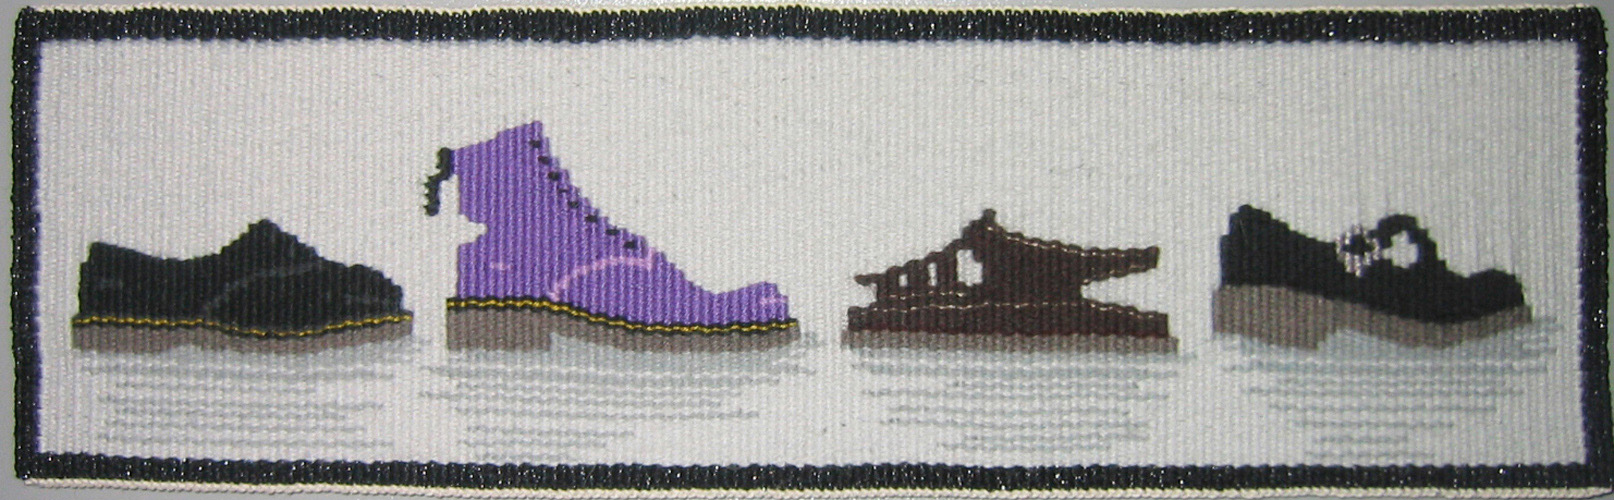 'THIS GOES WITH THAT' - SHOES, 10 x 34 cm, 2004